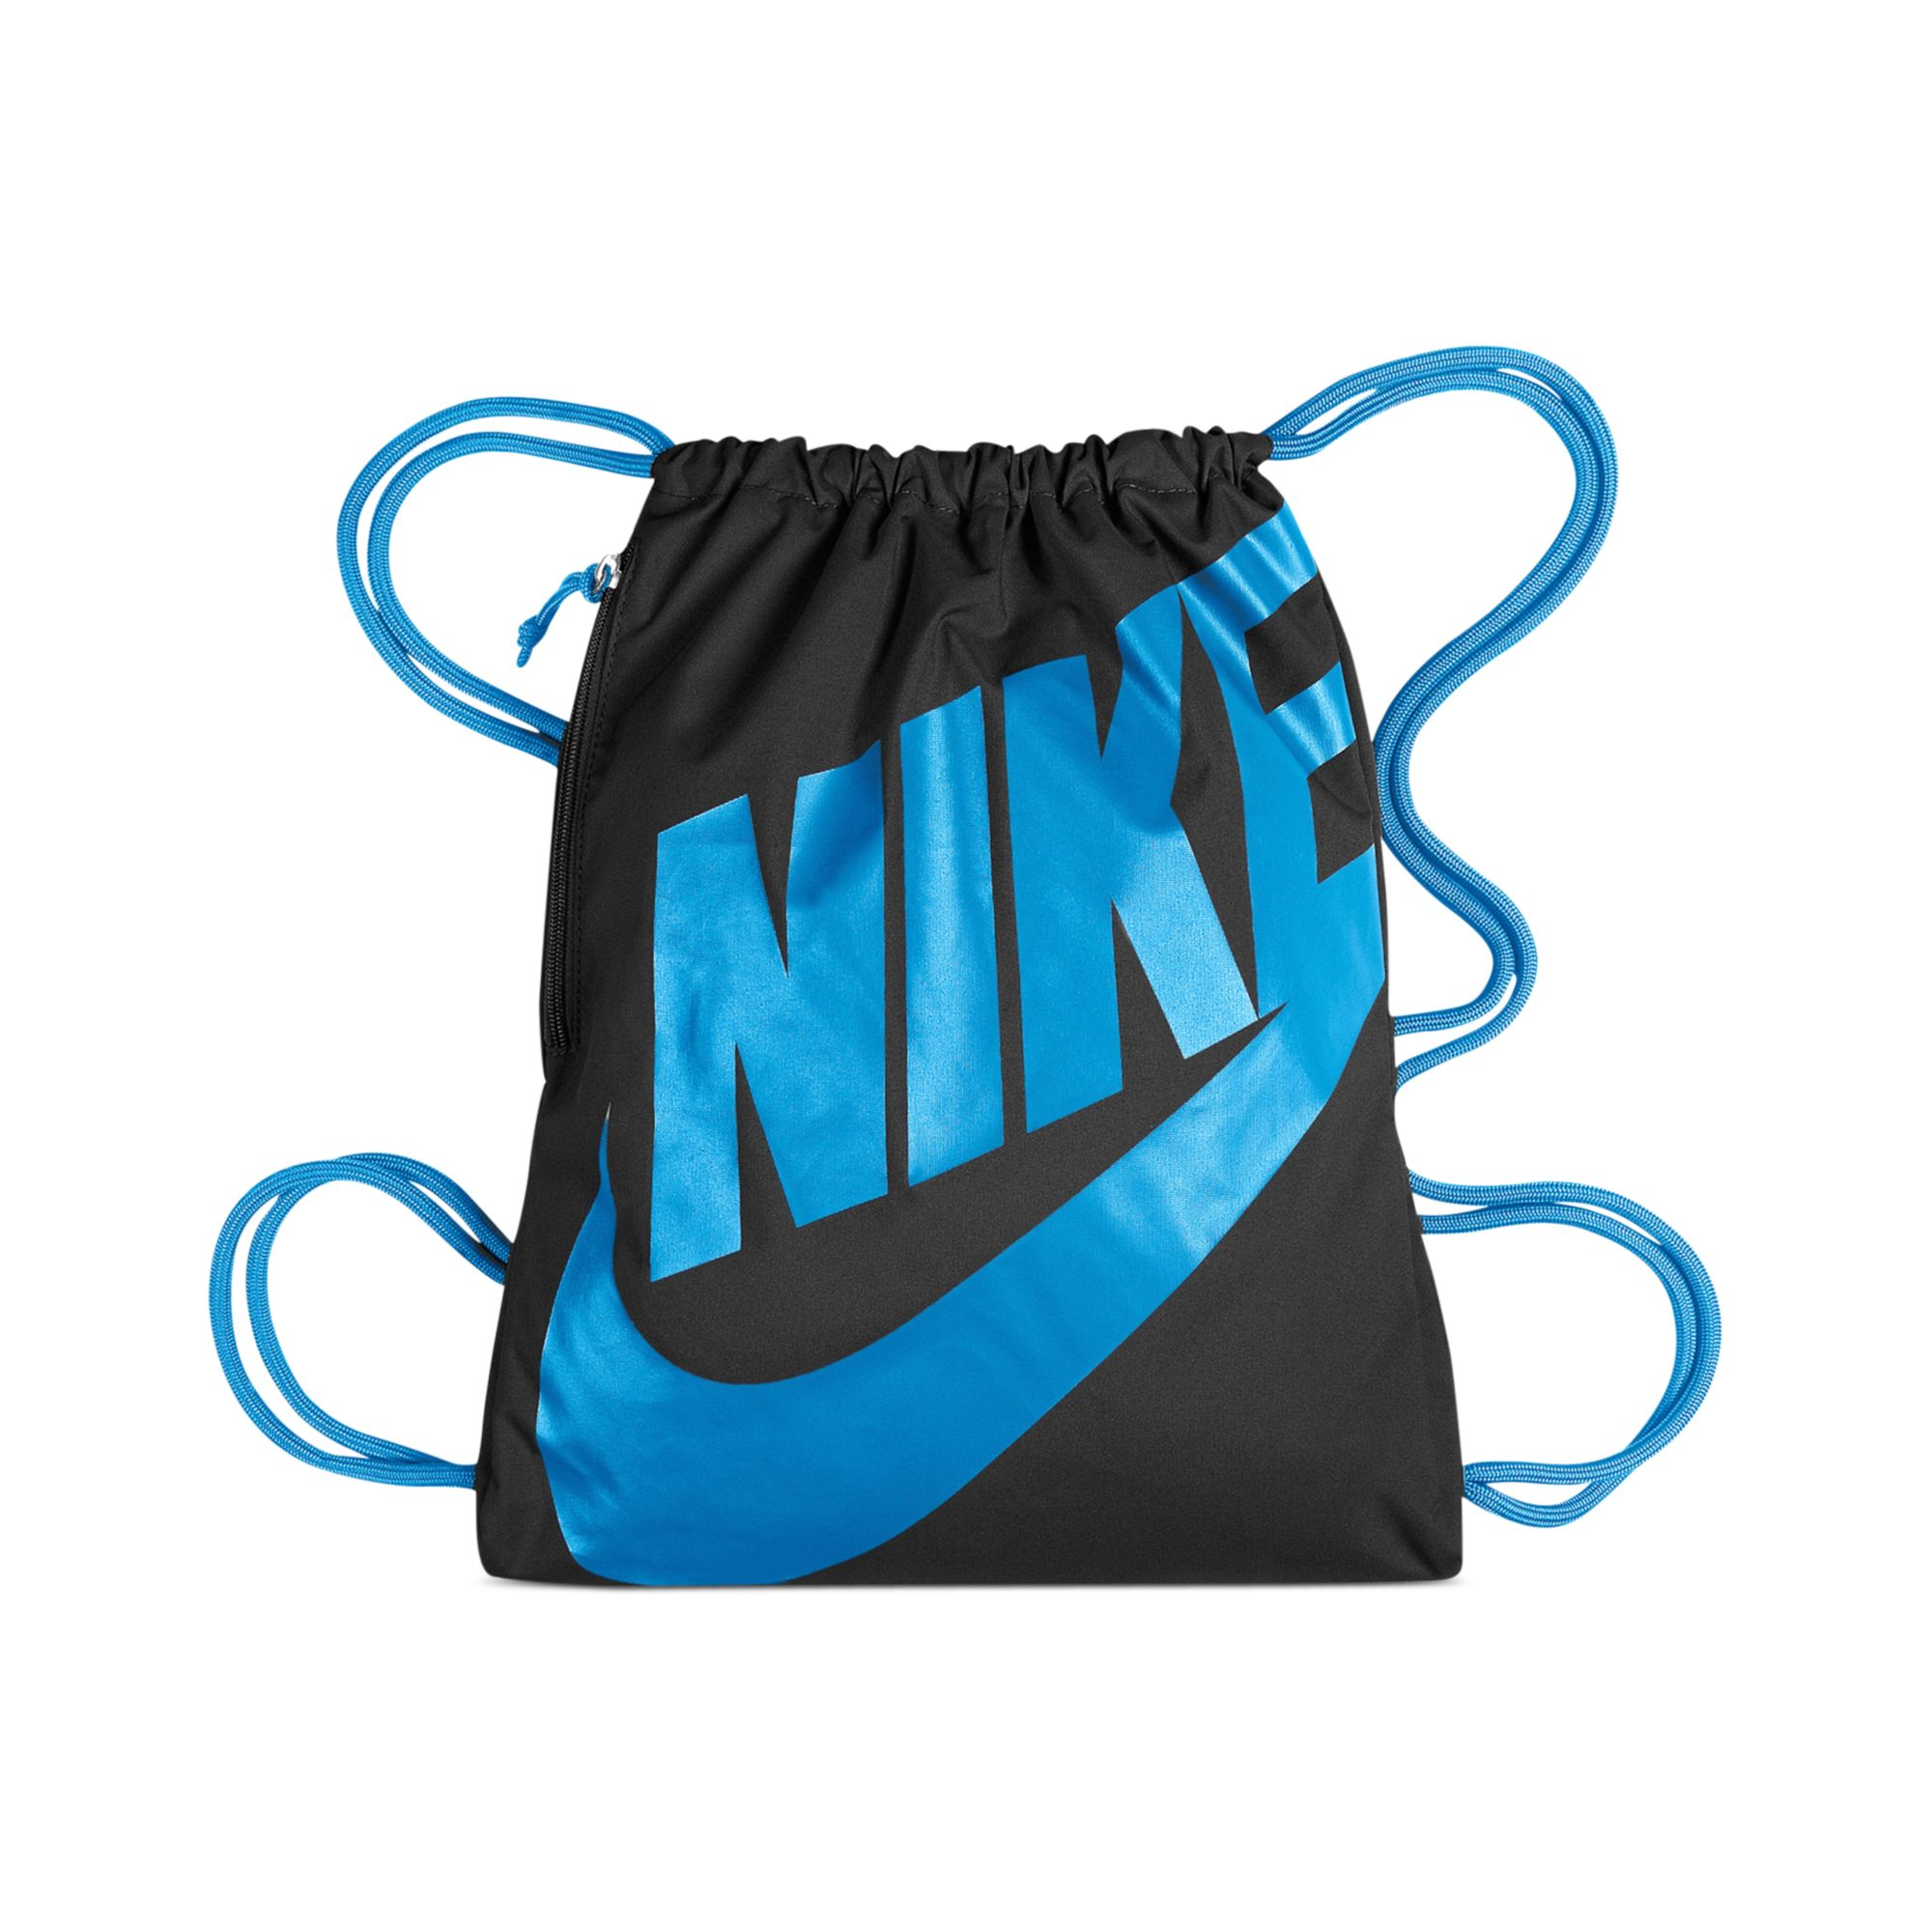 Lyst - Nike Heritage Gymsack in Blue for Men f8fee24d7a20c